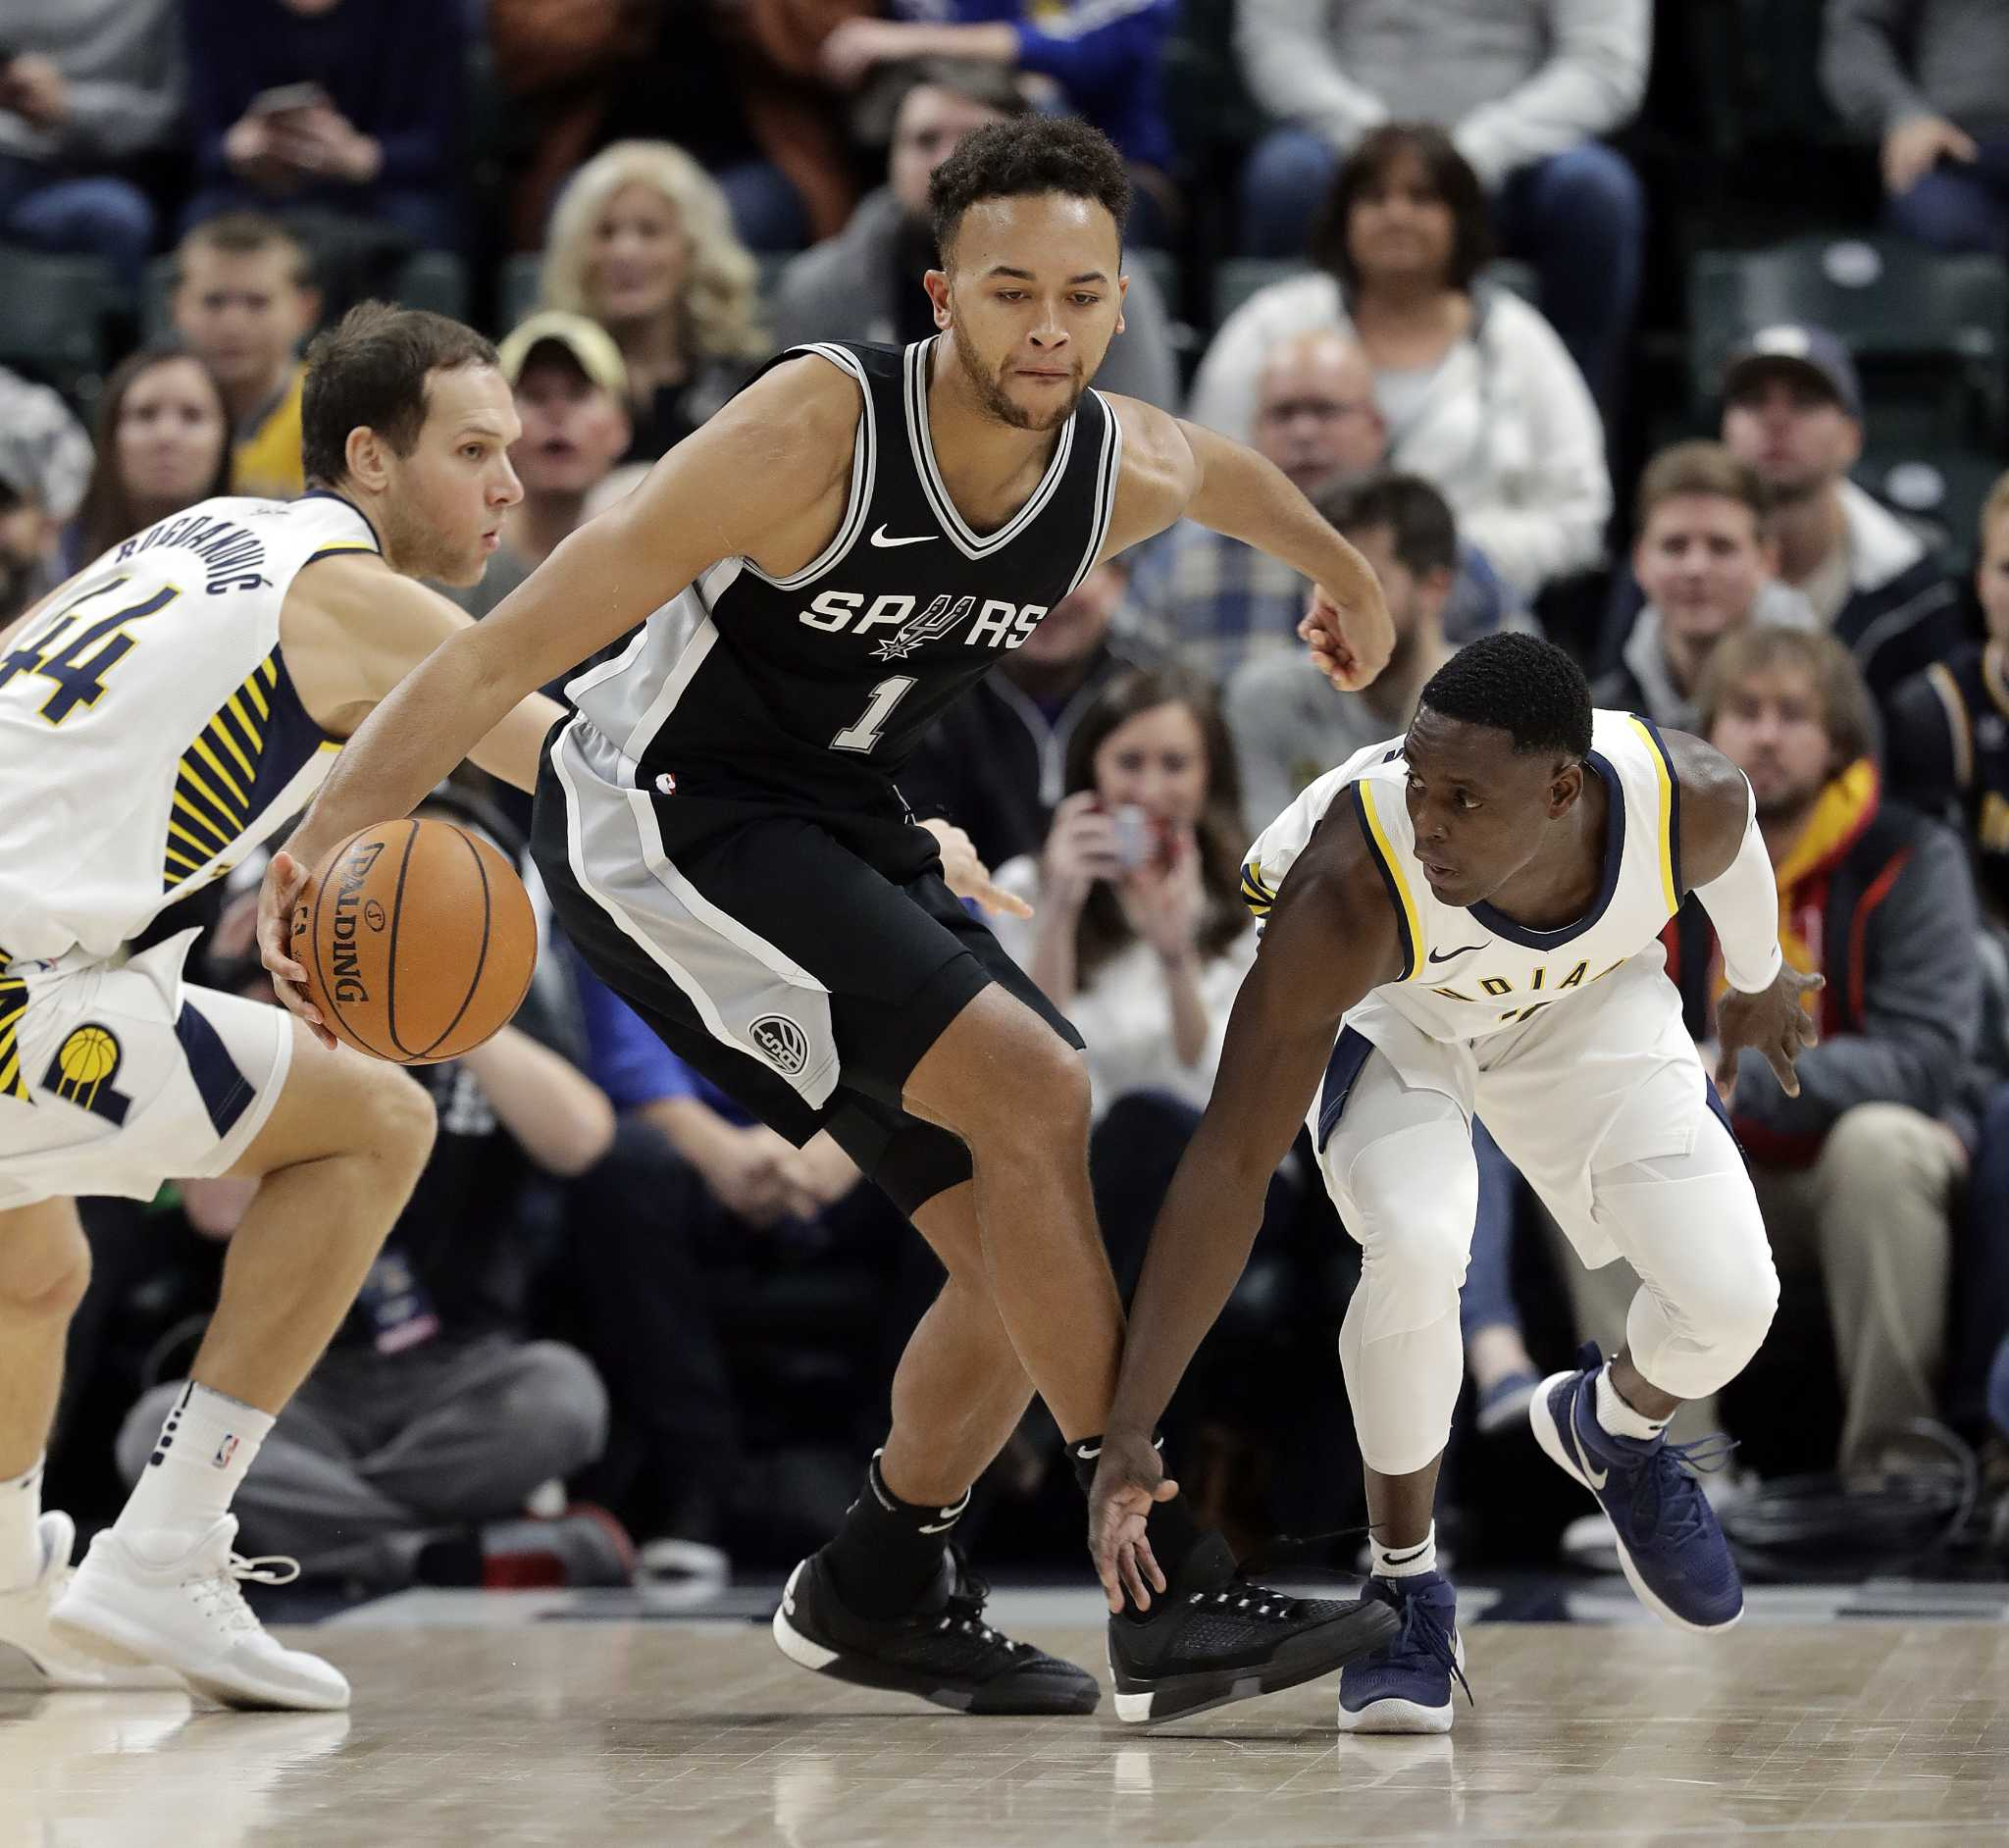 Spurs First Team Players Squad: Leonard Wants Spurs To Stick With Current Roster